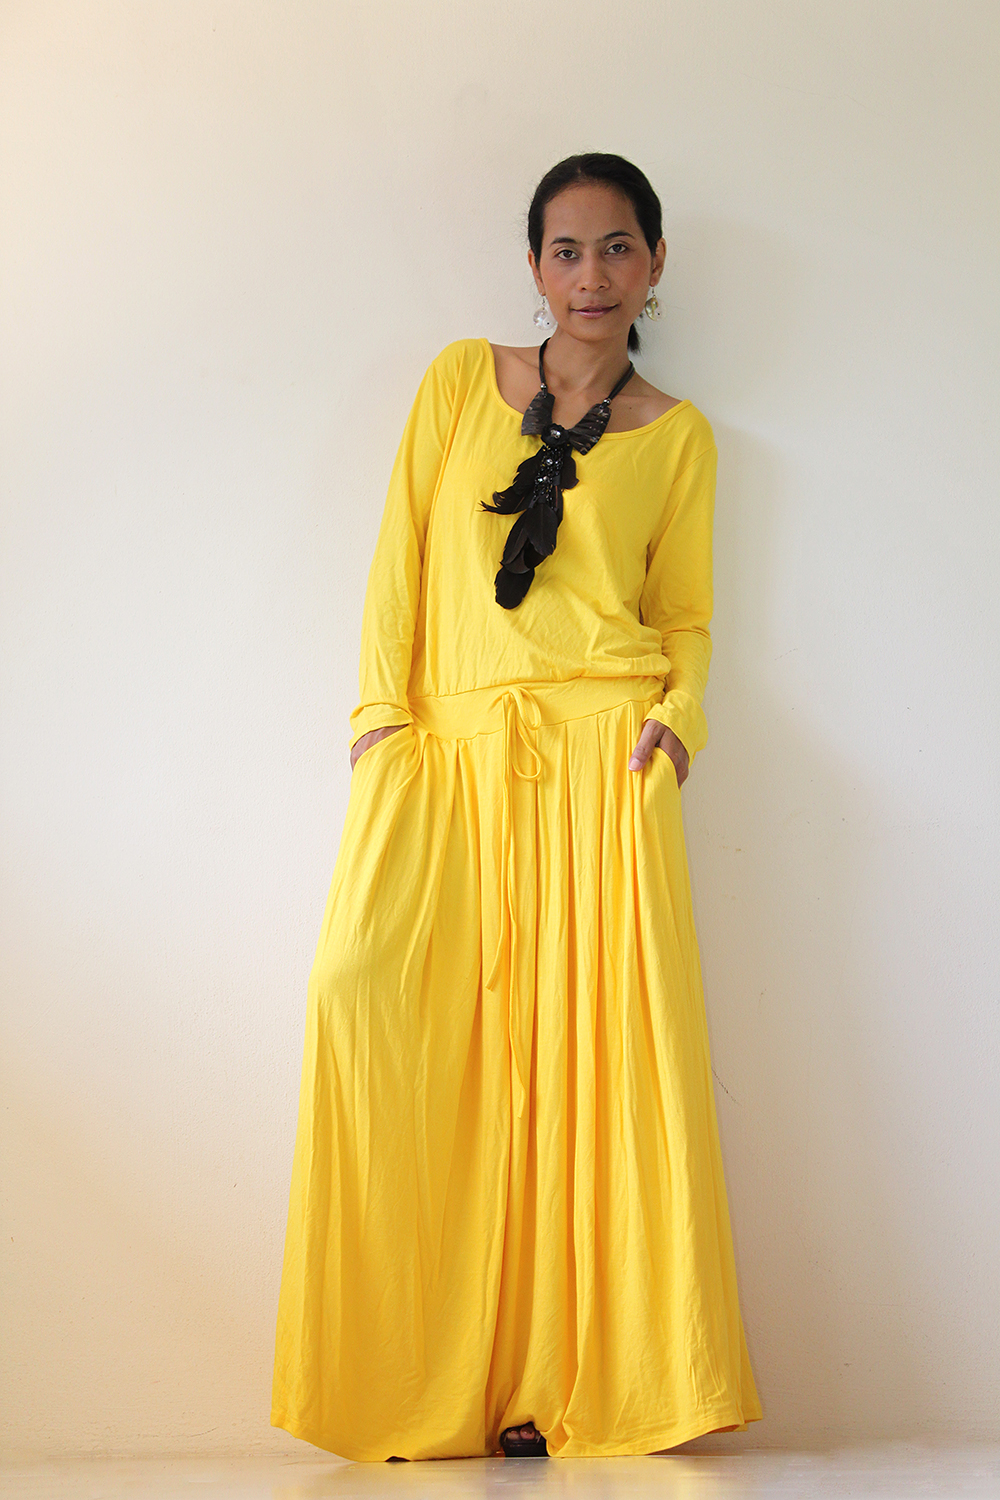 eea75491f863 Yellow Maxi Dress - Long Sleeve Dress on Luulla